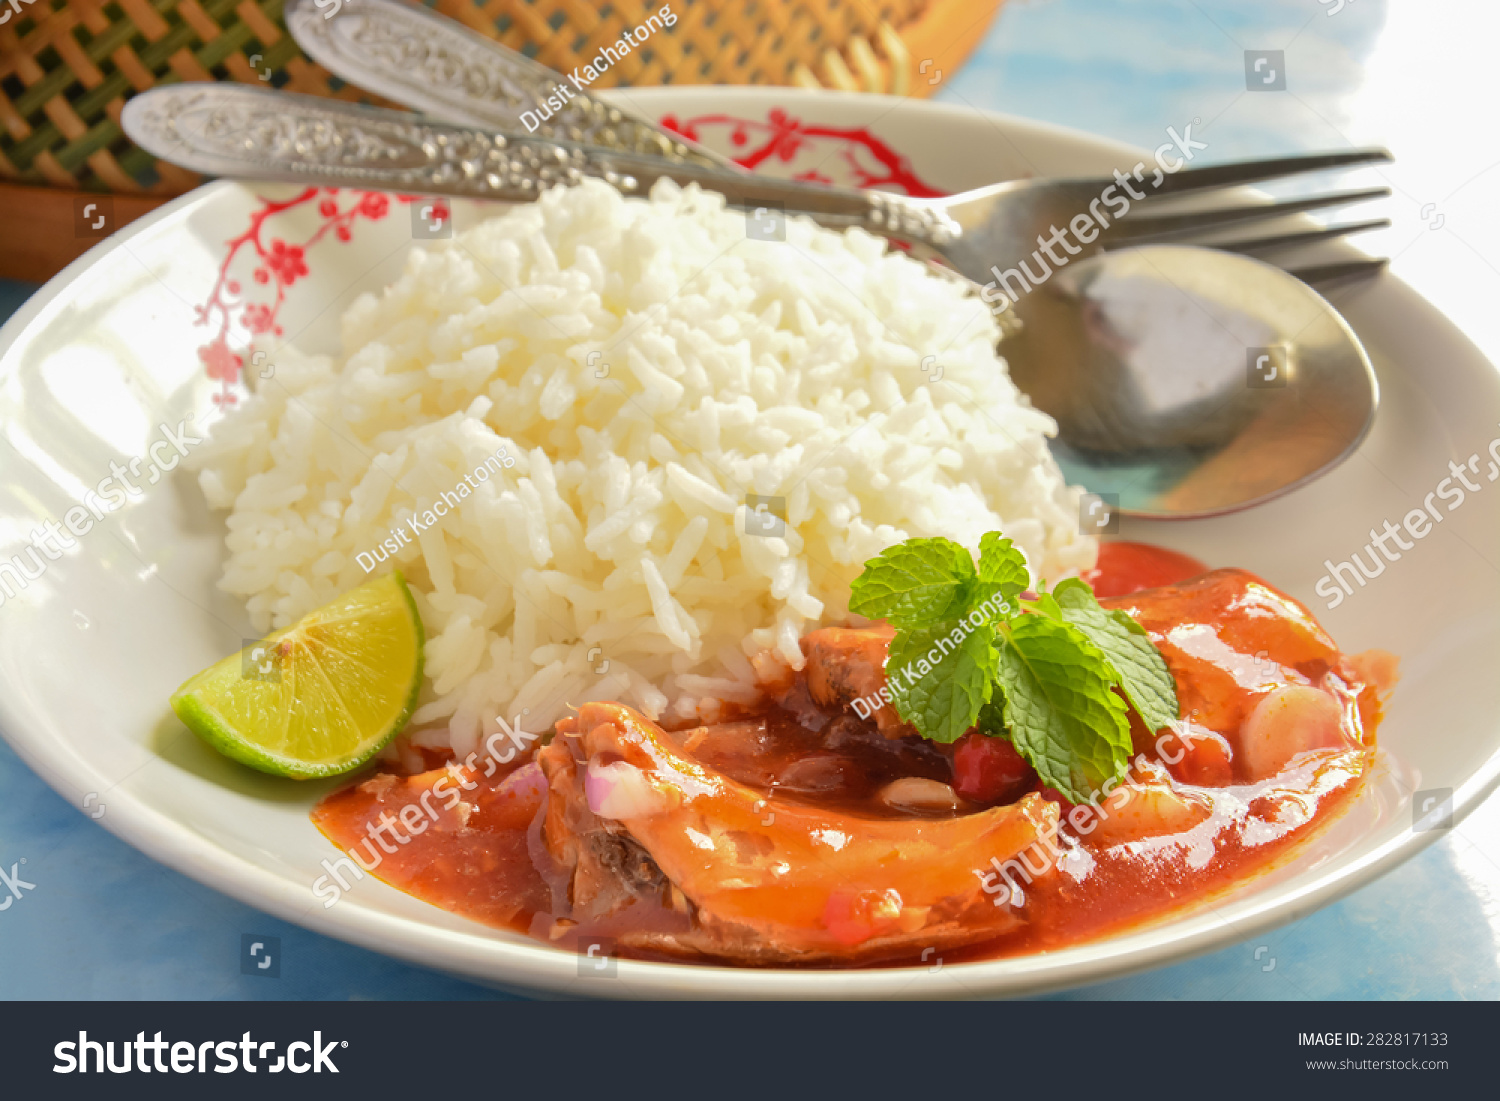 Canned fish jasmine ricethai style stock photo 282817133 for Fish and rice diet